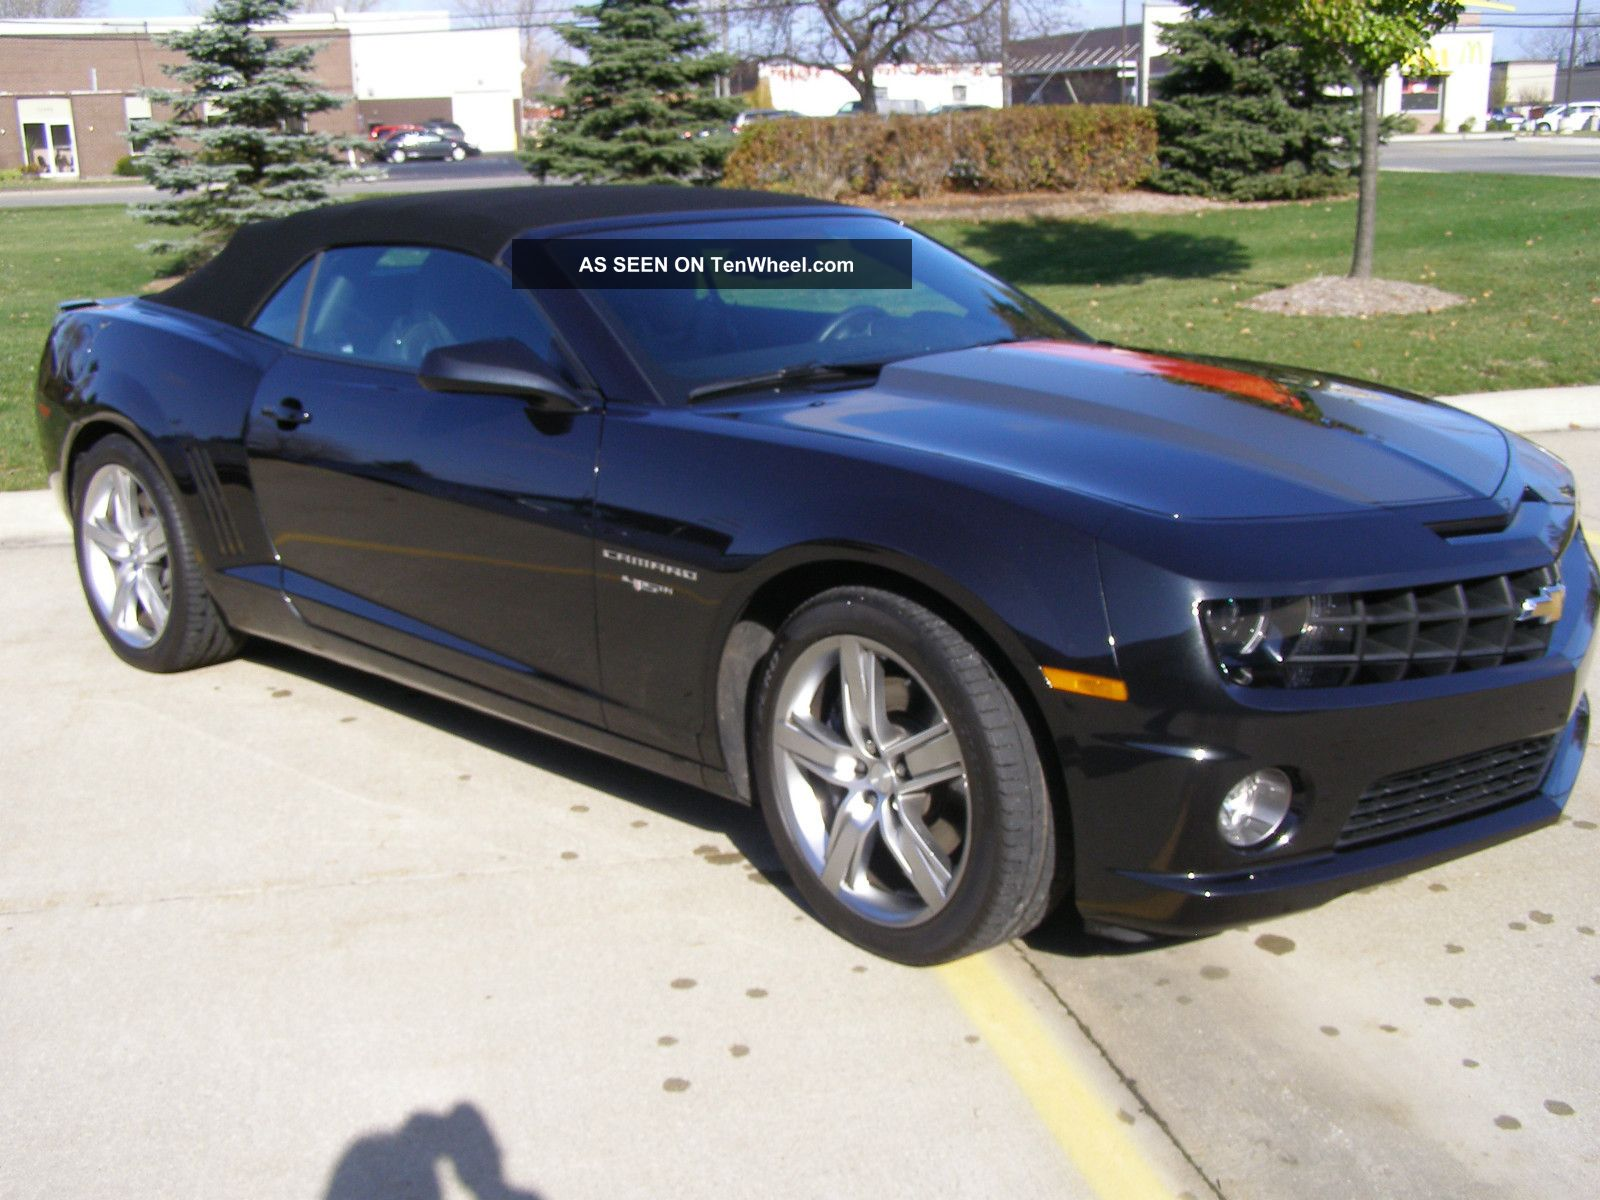 2012 45th anniversary camaro ss convertible. Black Bedroom Furniture Sets. Home Design Ideas